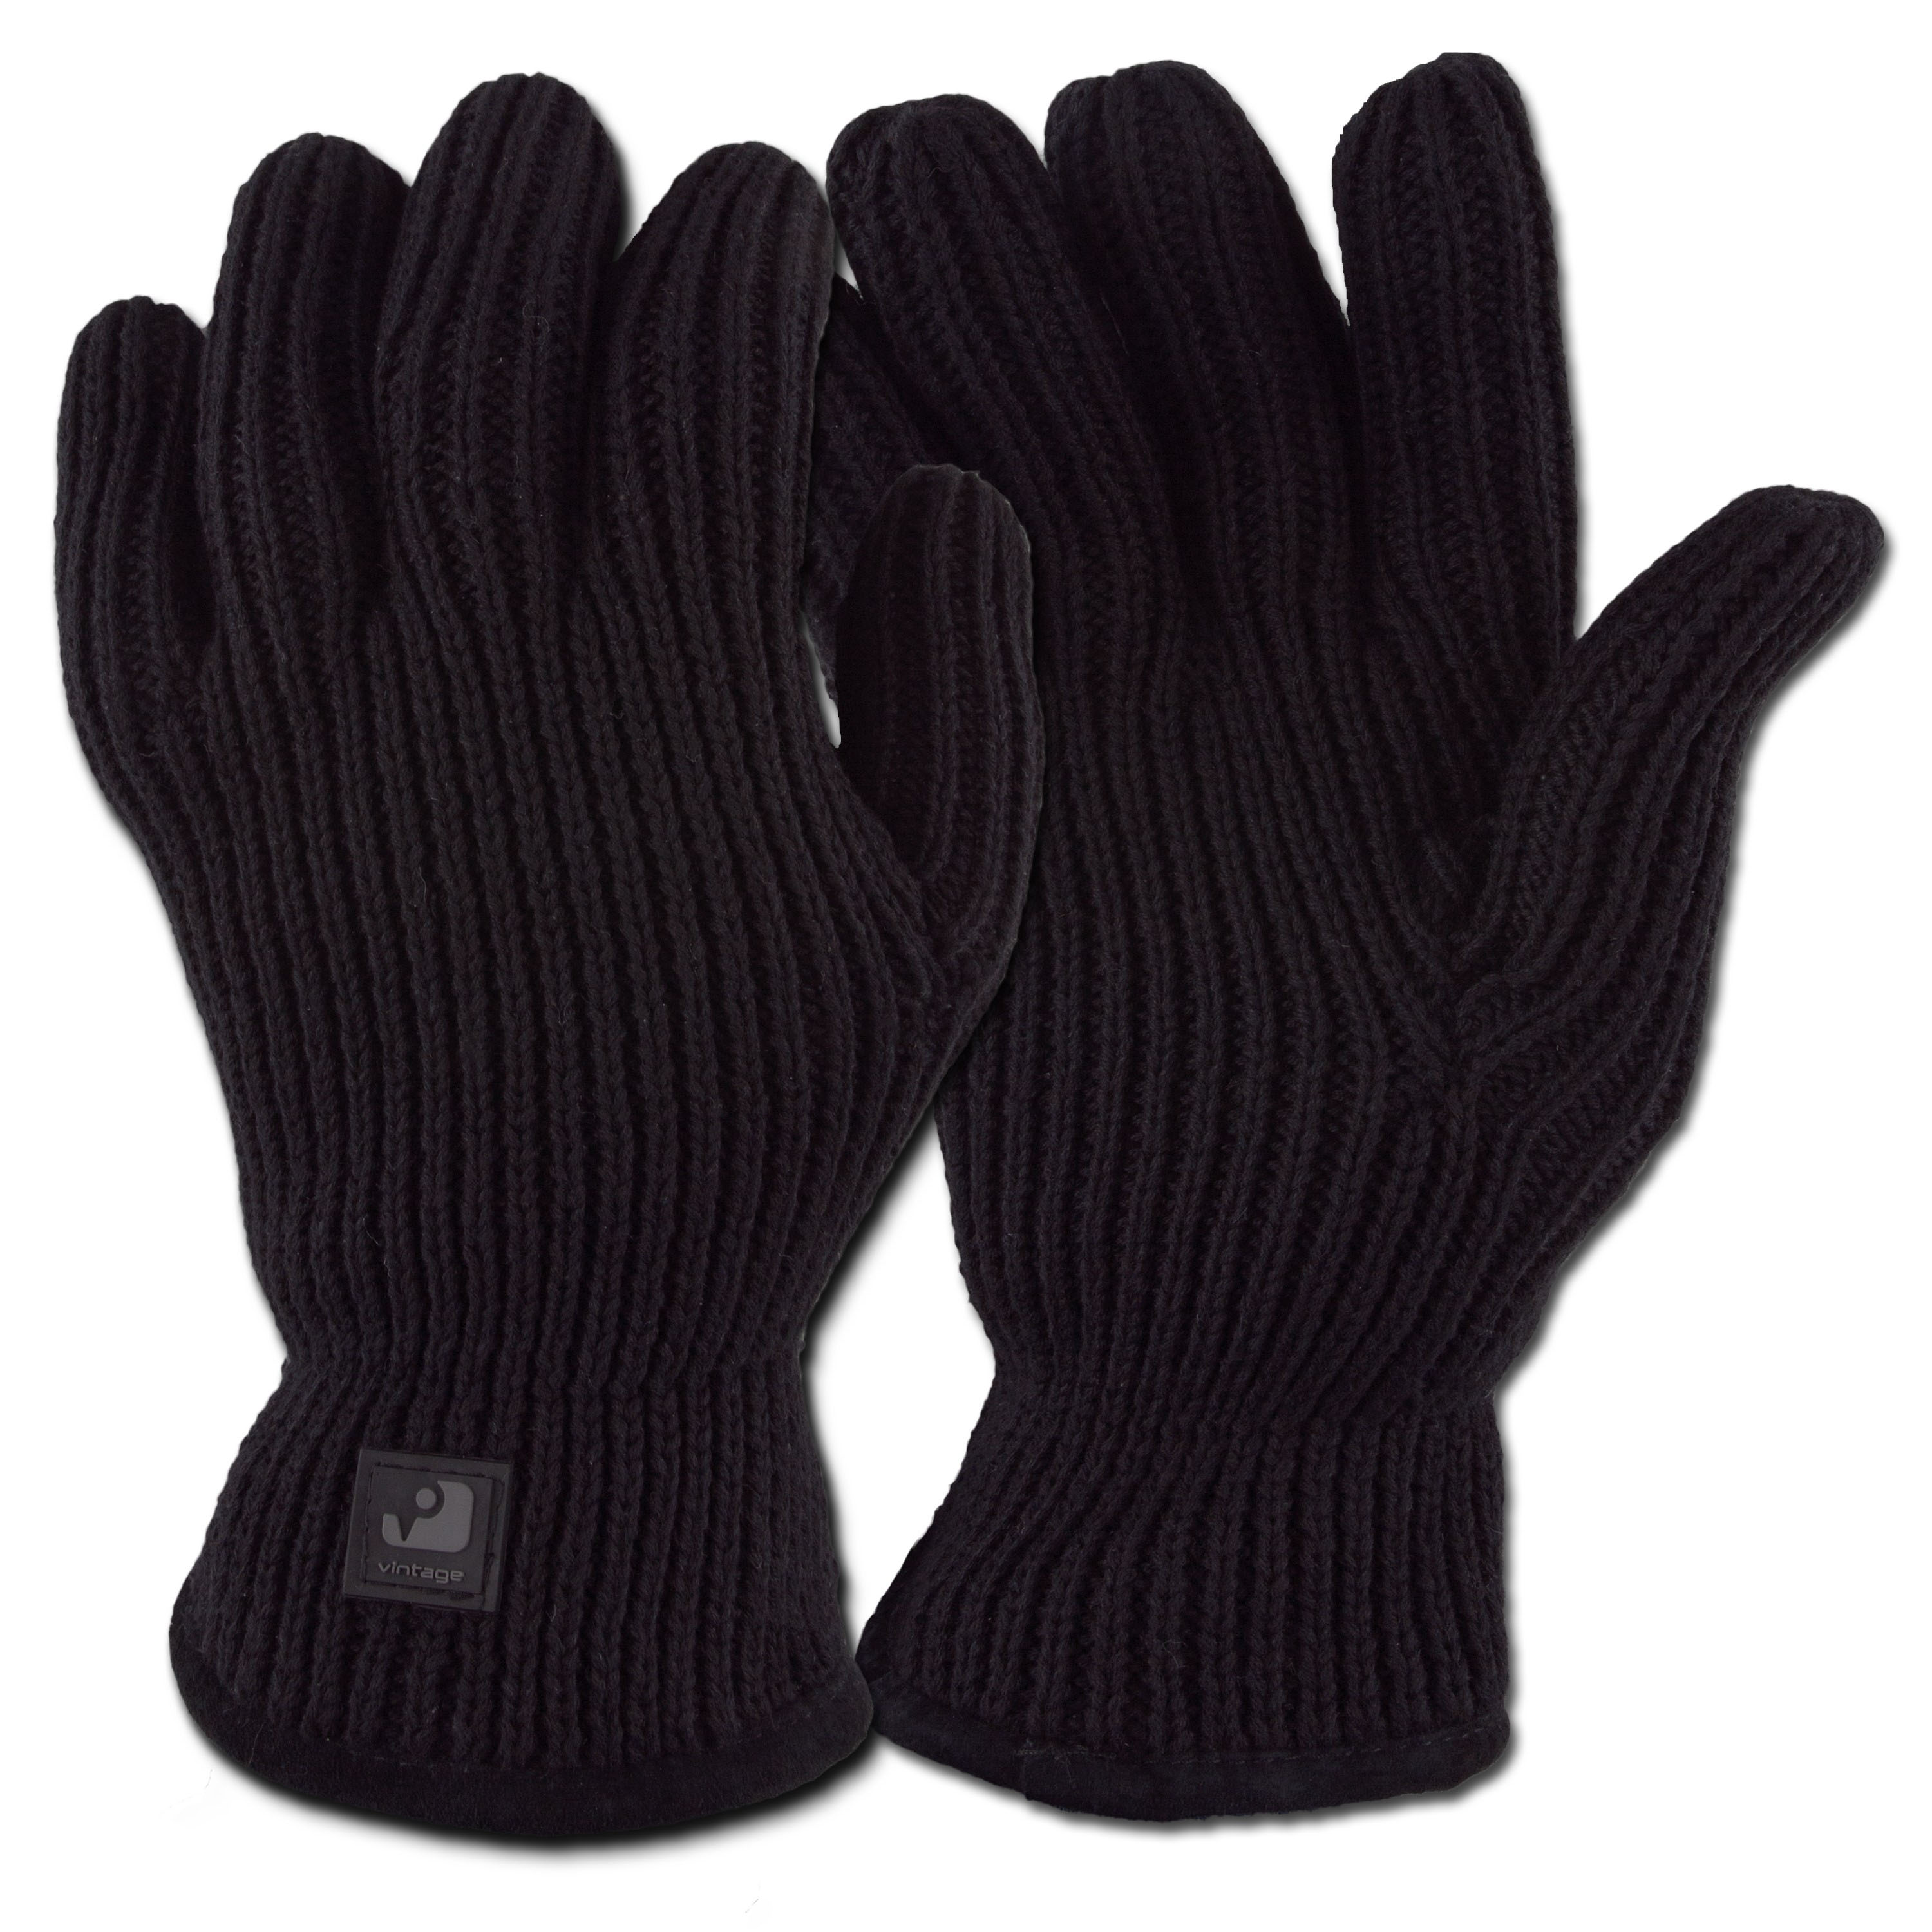 Strickhandschuh Vintage Industries Matrix Glove schwarz